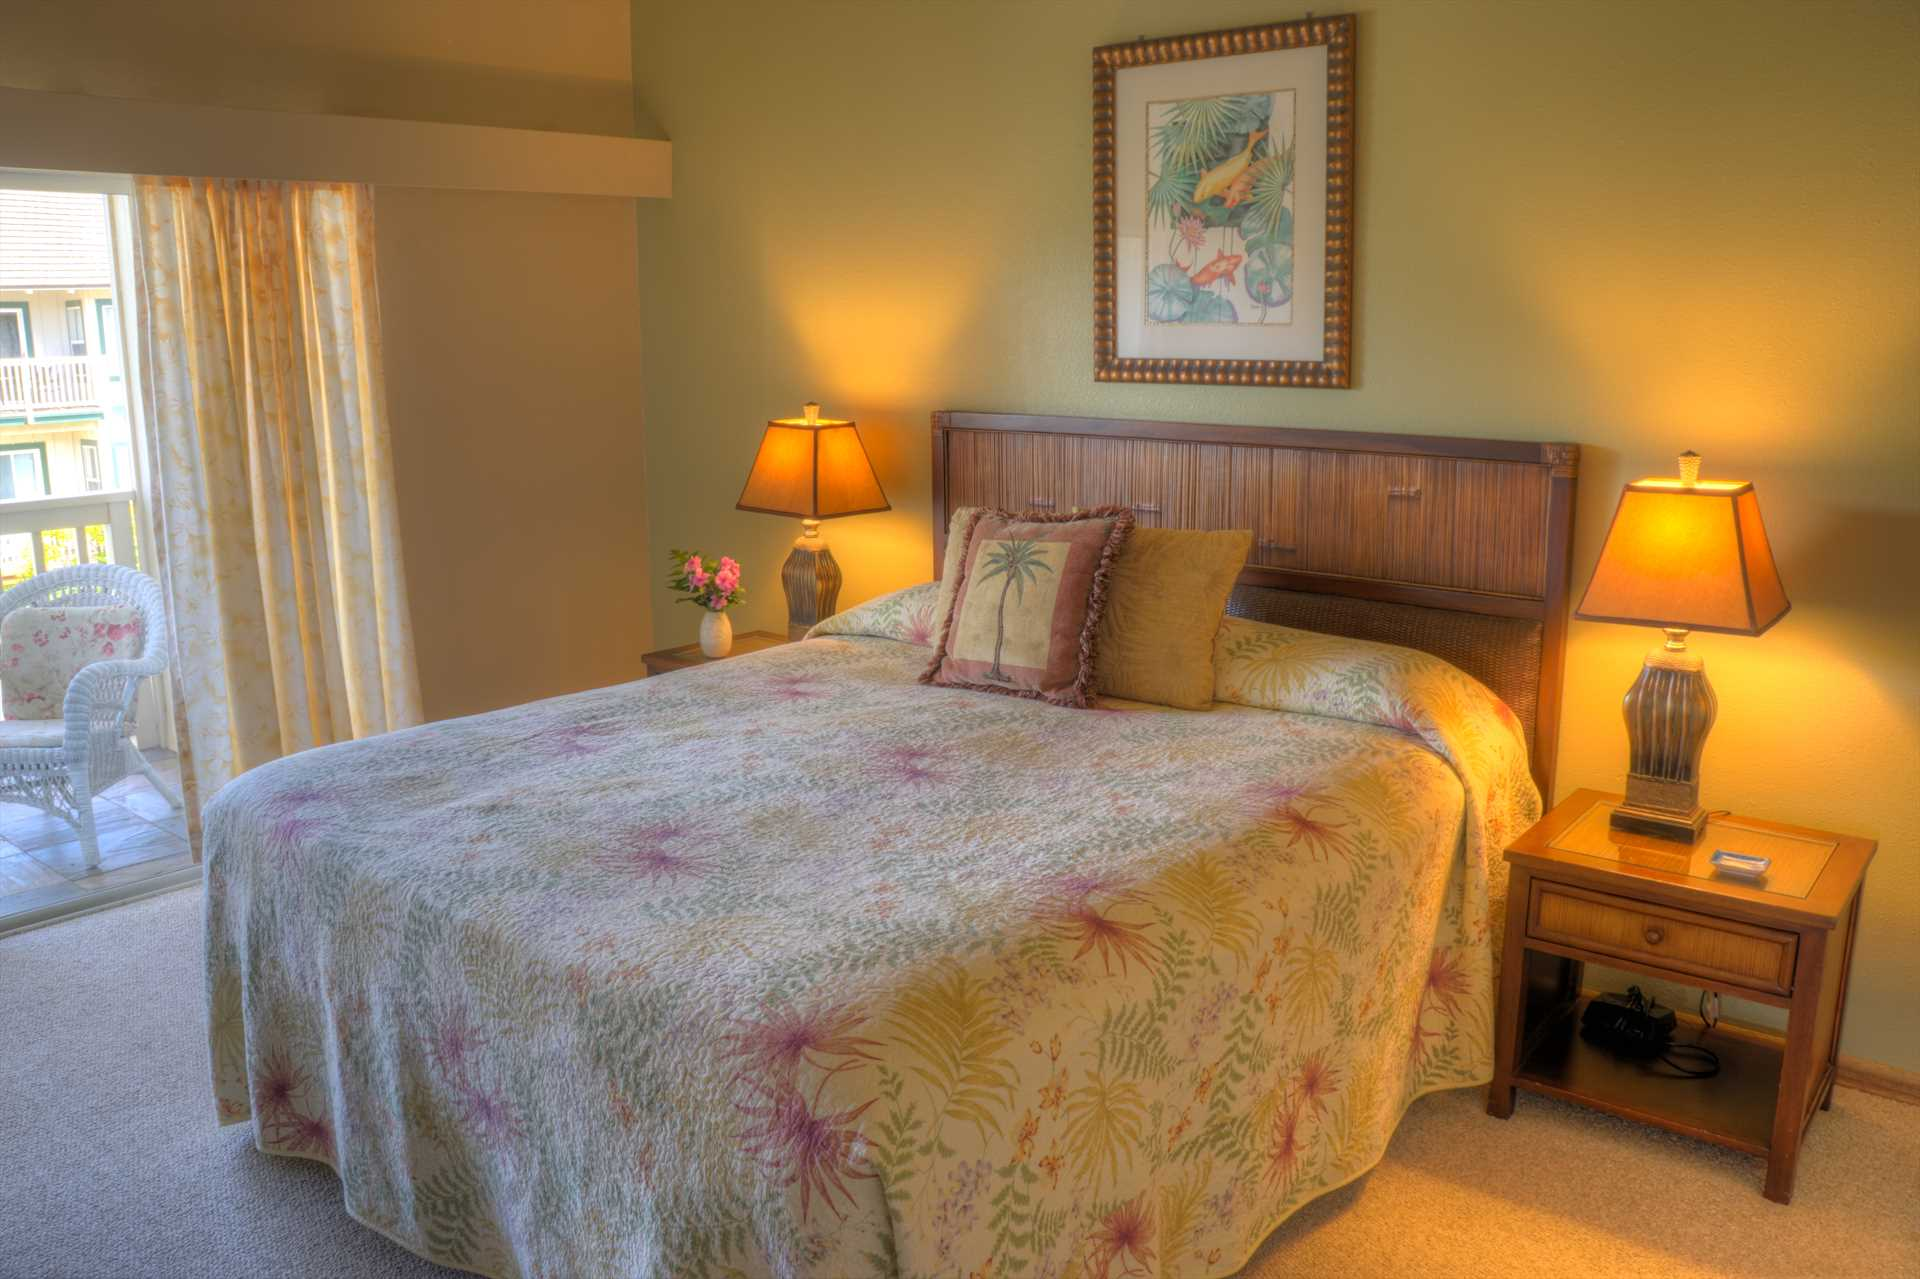 The master bedroom features a comfortable king bed, dresser, cable TV, ample closet space and a covered private lanai.